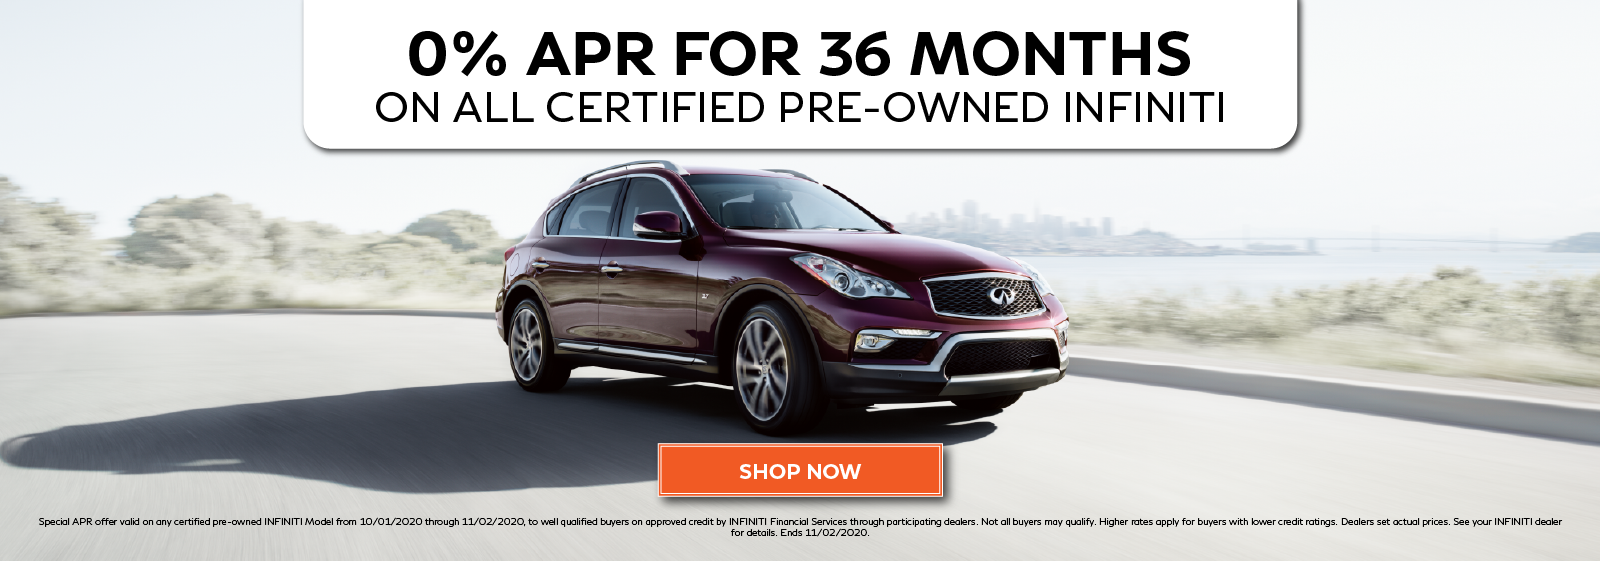 Well qualified buyers can get 0% APR financing for 36 months on all certified pre-owned INFINITI. Click to shop now.